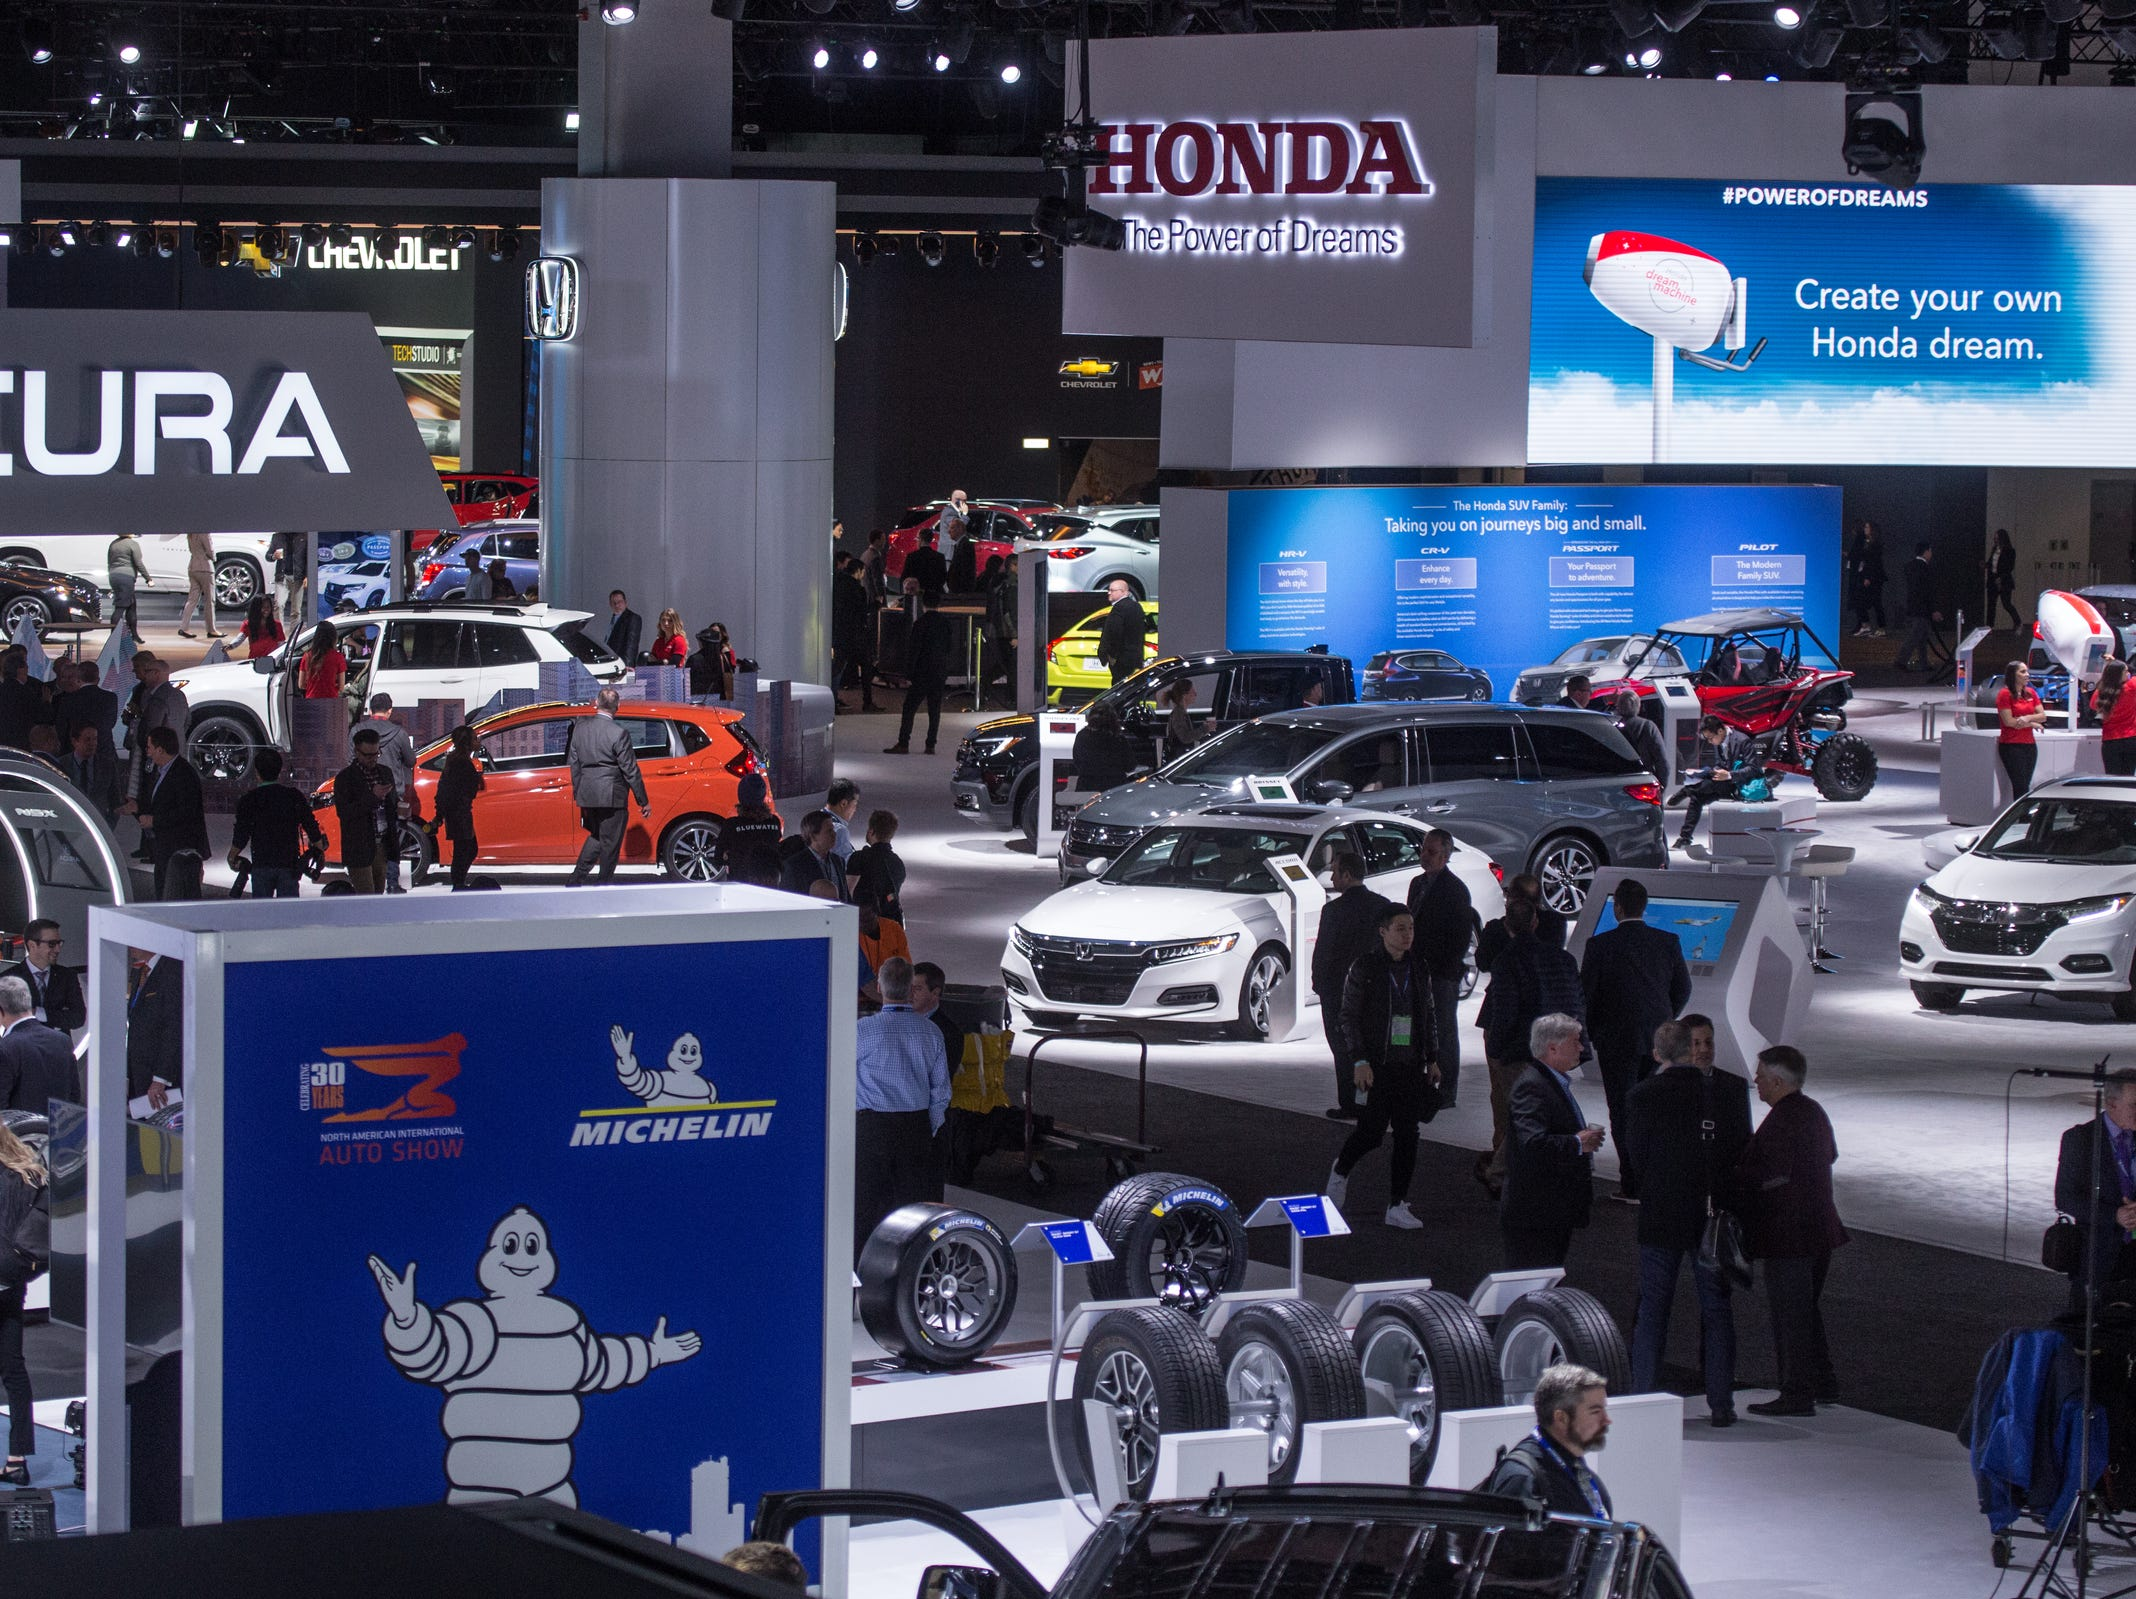 A view of the show floor during the 2019 North American International Auto Show held at Cobo Center in downtown Detroit on Monday, Jan. 14, 2019.